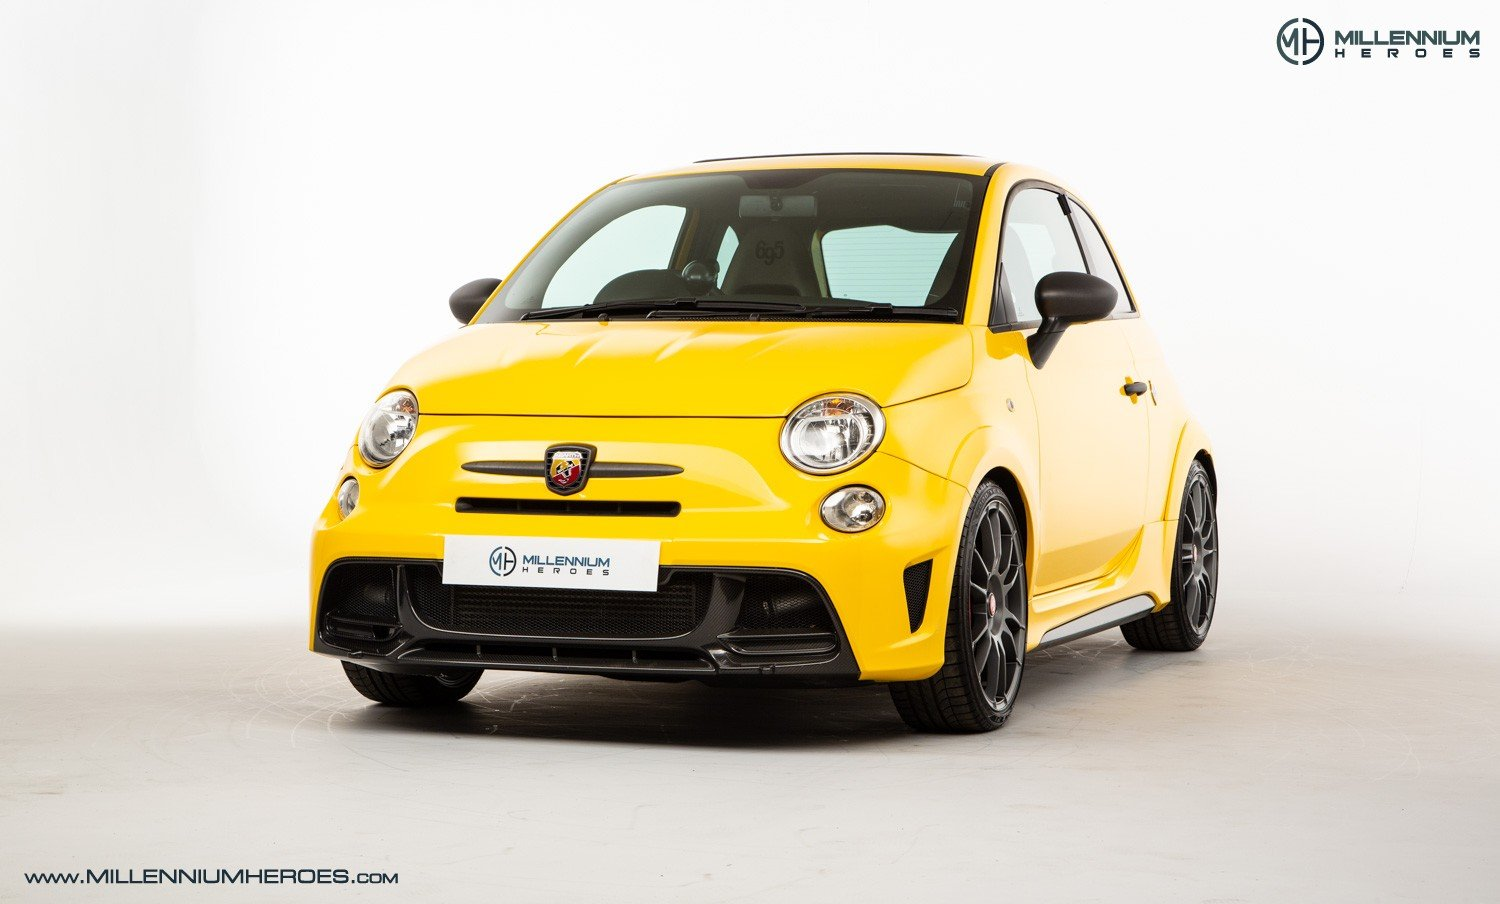 2016 ABARTH 695 BIPOSTO RECORD EDITION // 1 OF 133 WORLDWIDE For Sale (picture 1 of 6)